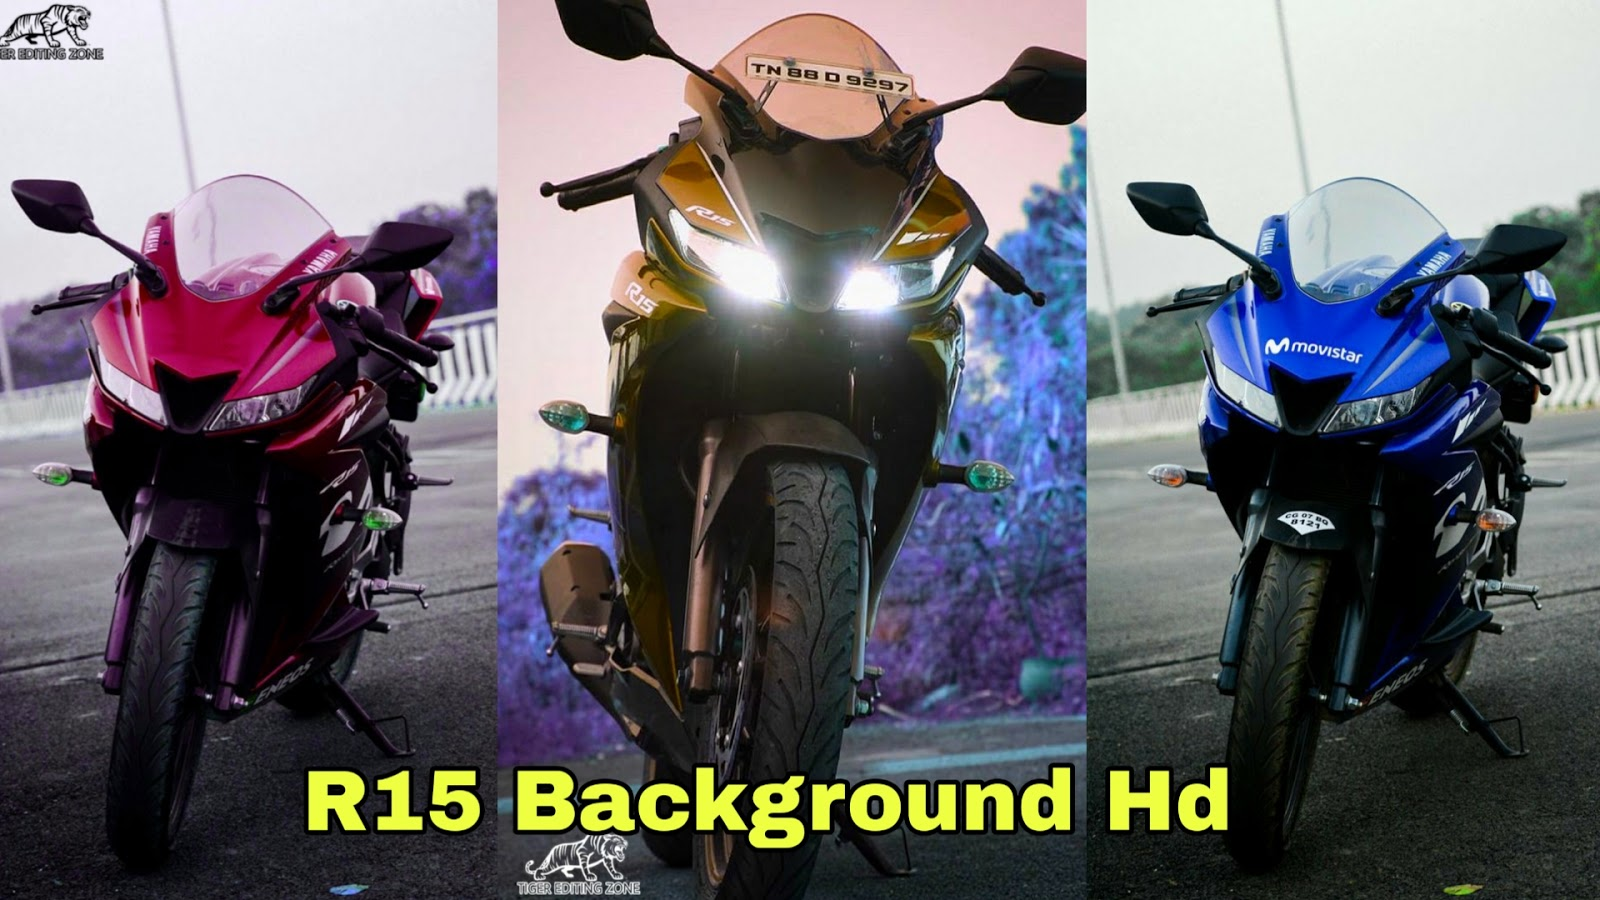 R15 Background Hd | R15 Images Hd | R15 Background For Editing